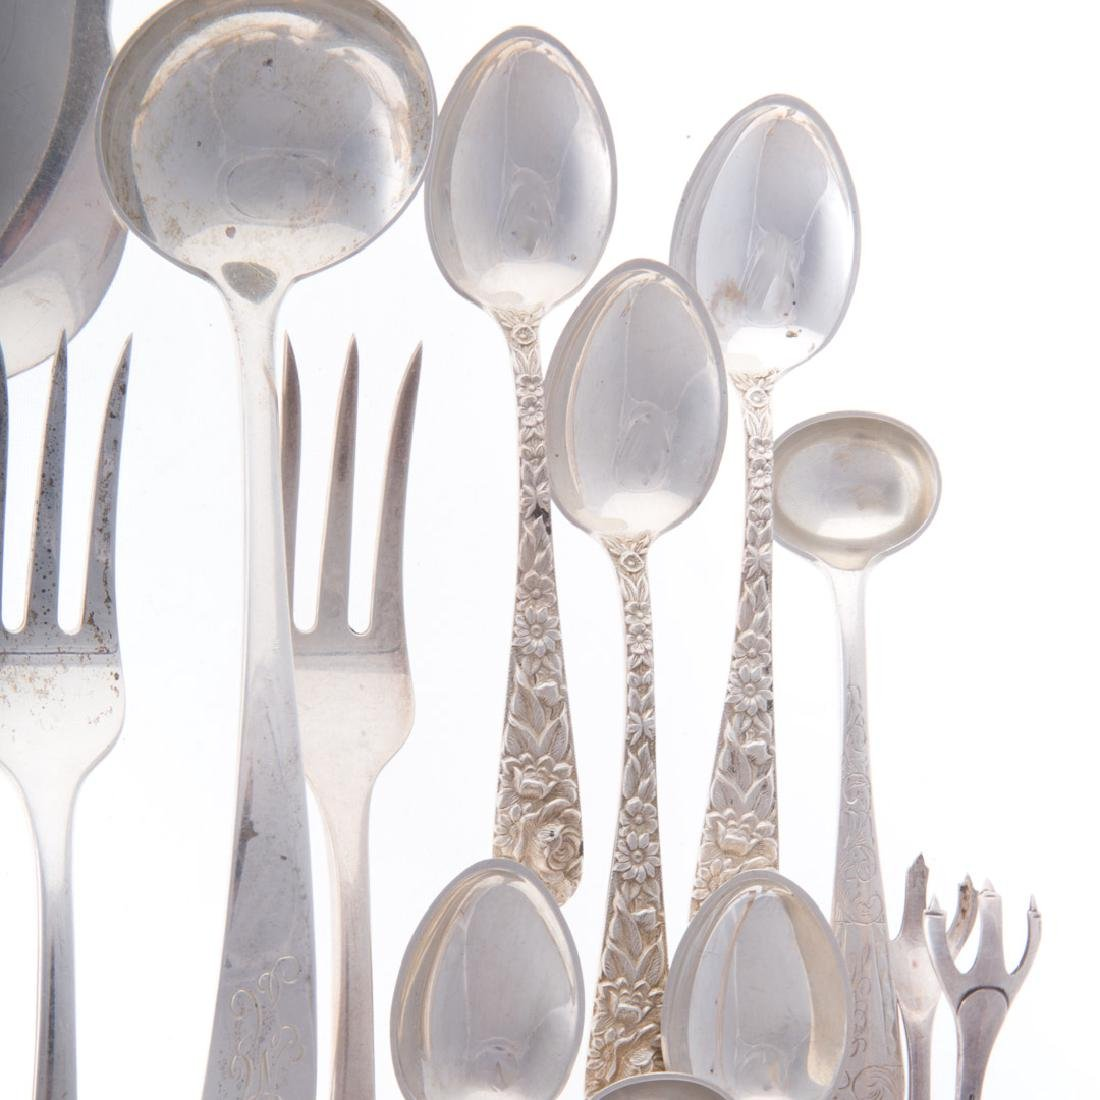 Collection of Kirk sterling silver flatware - 3